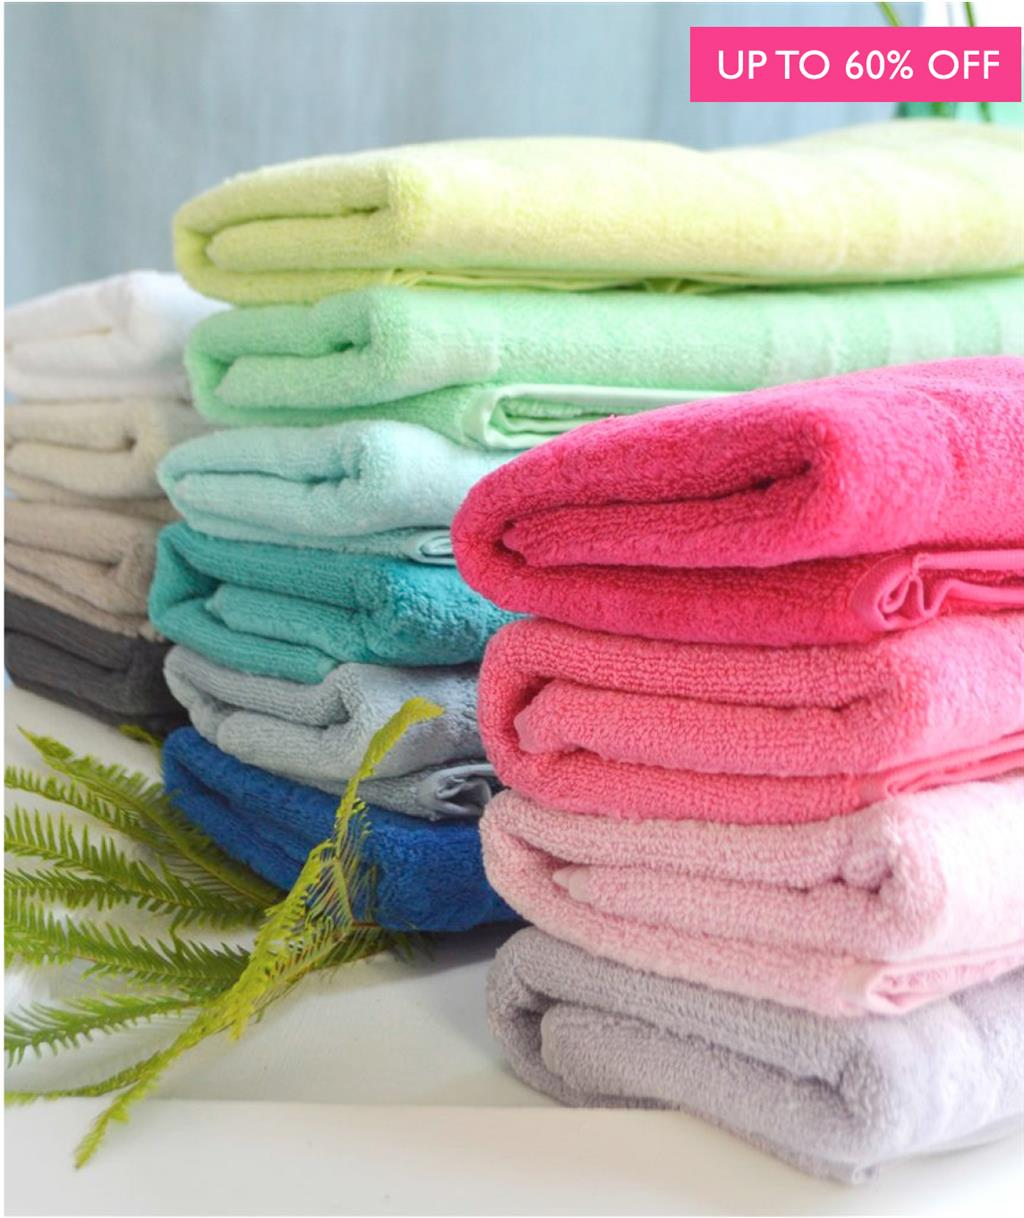 SHOP NEW TOWELS >